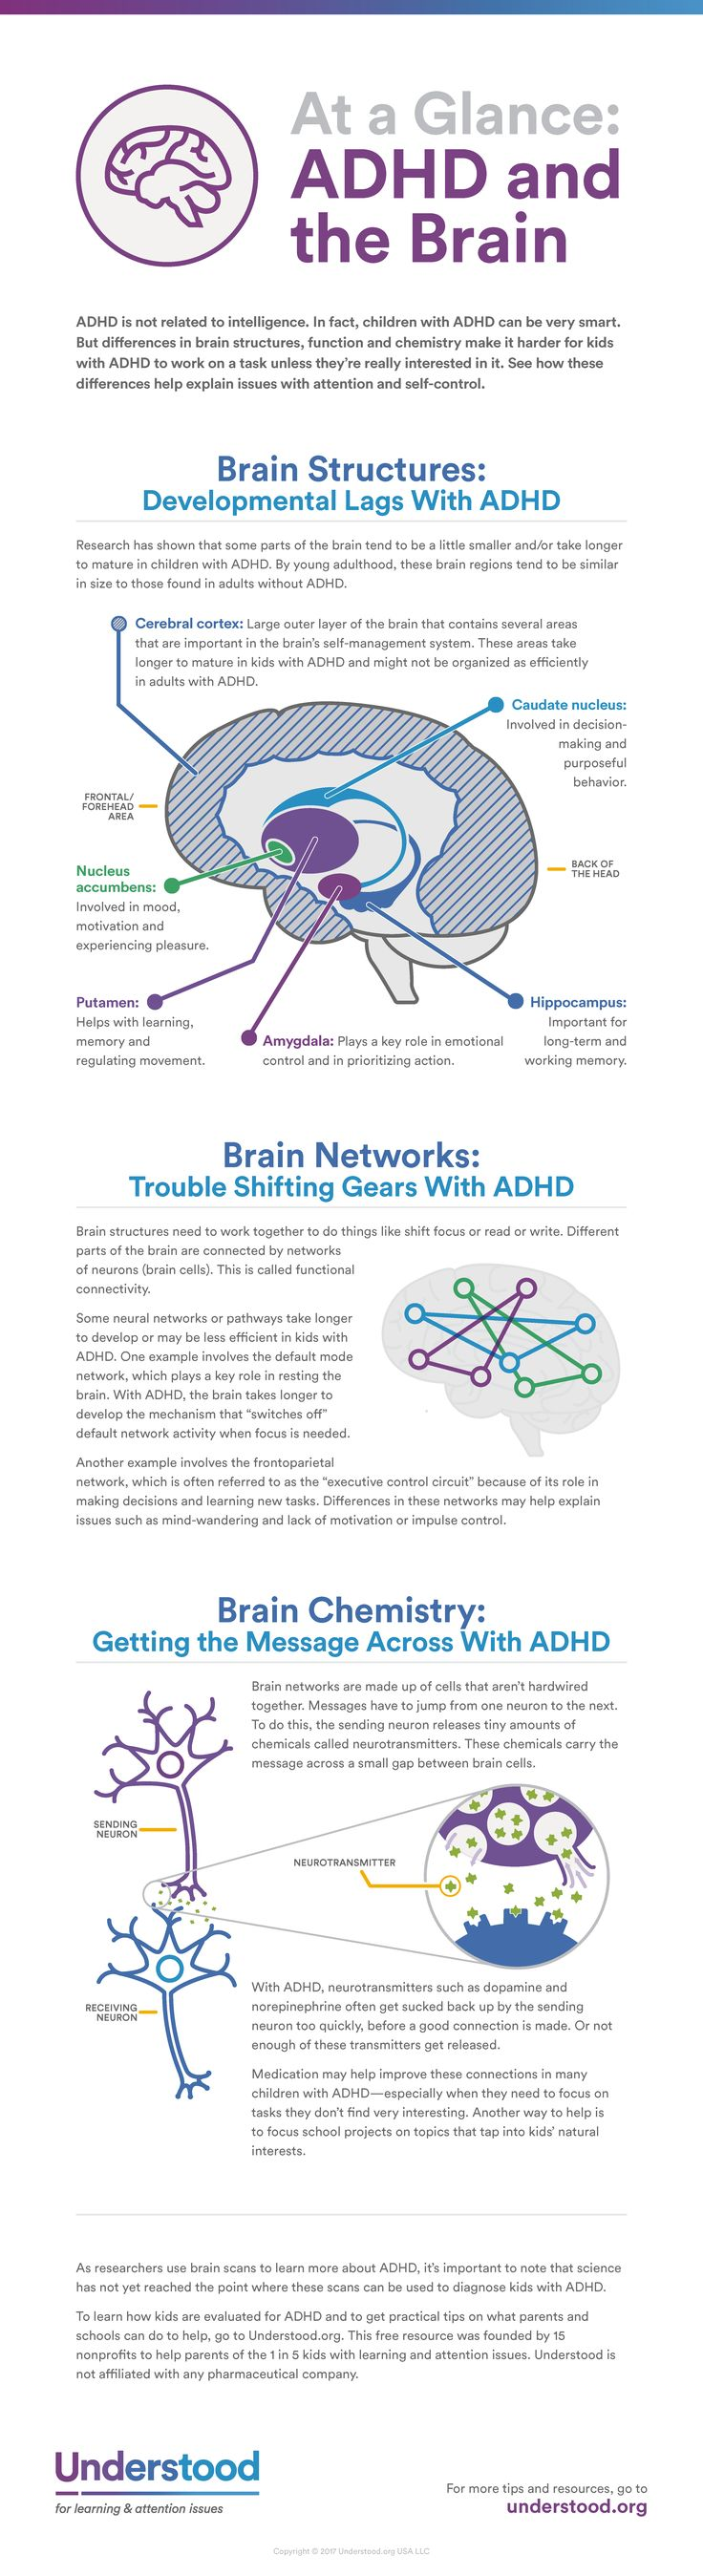 Researchers are learning more and more about how differences in brain development and brain function are involved in ADHD (also known as ADD). This graphic can help you understand how your child's brain works—and why ADHD isn't simply a matter of willpower.